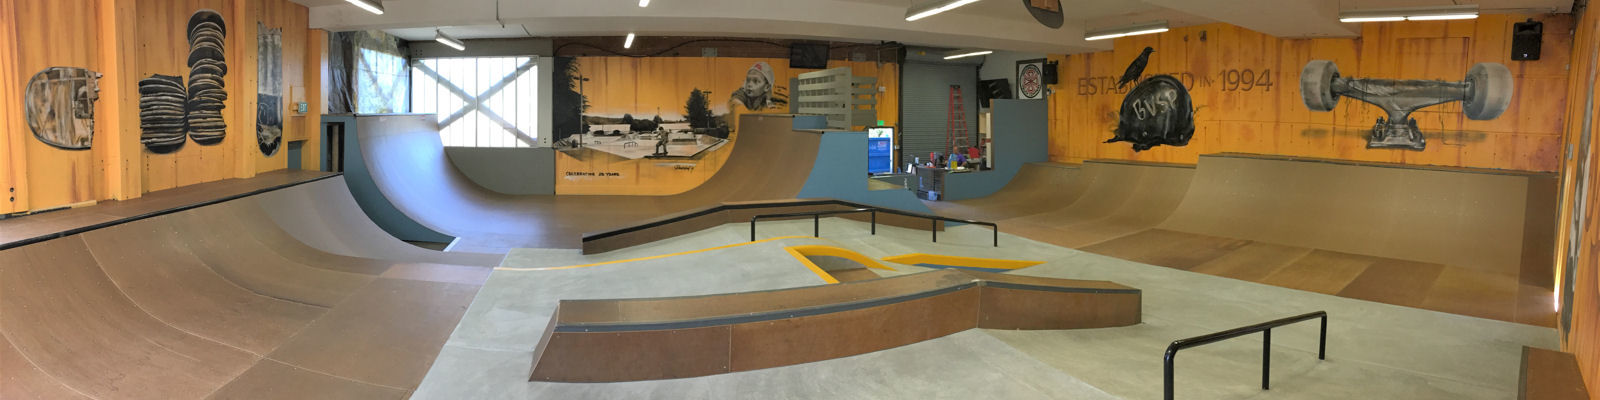 Indoor view of Bellevue Skate Park